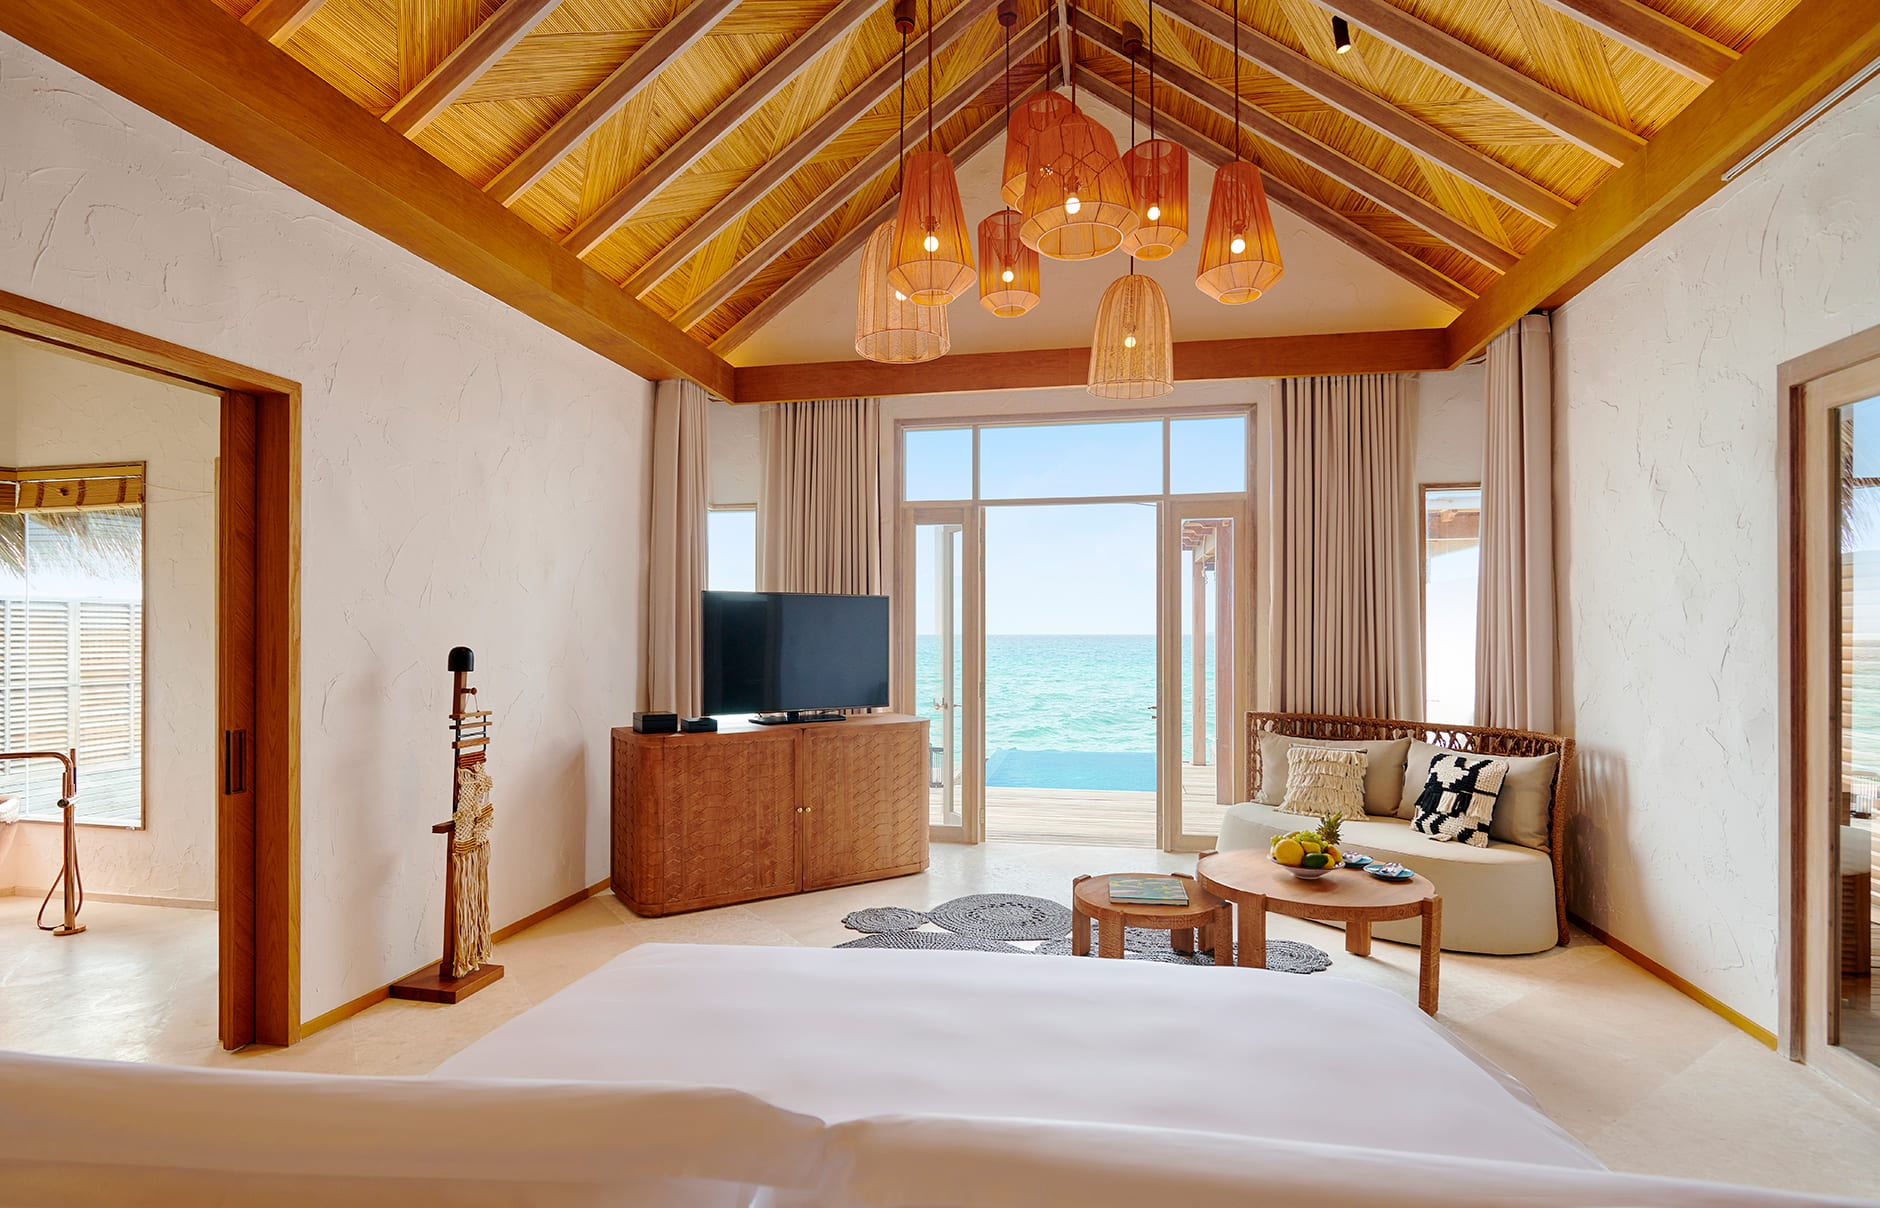 Fairmont Maldives, Sirru Fen Fushi,  Shaviyani Atoll, Maldives. Hotel Review by TravelPlusStyle. Photo © AccorHotels